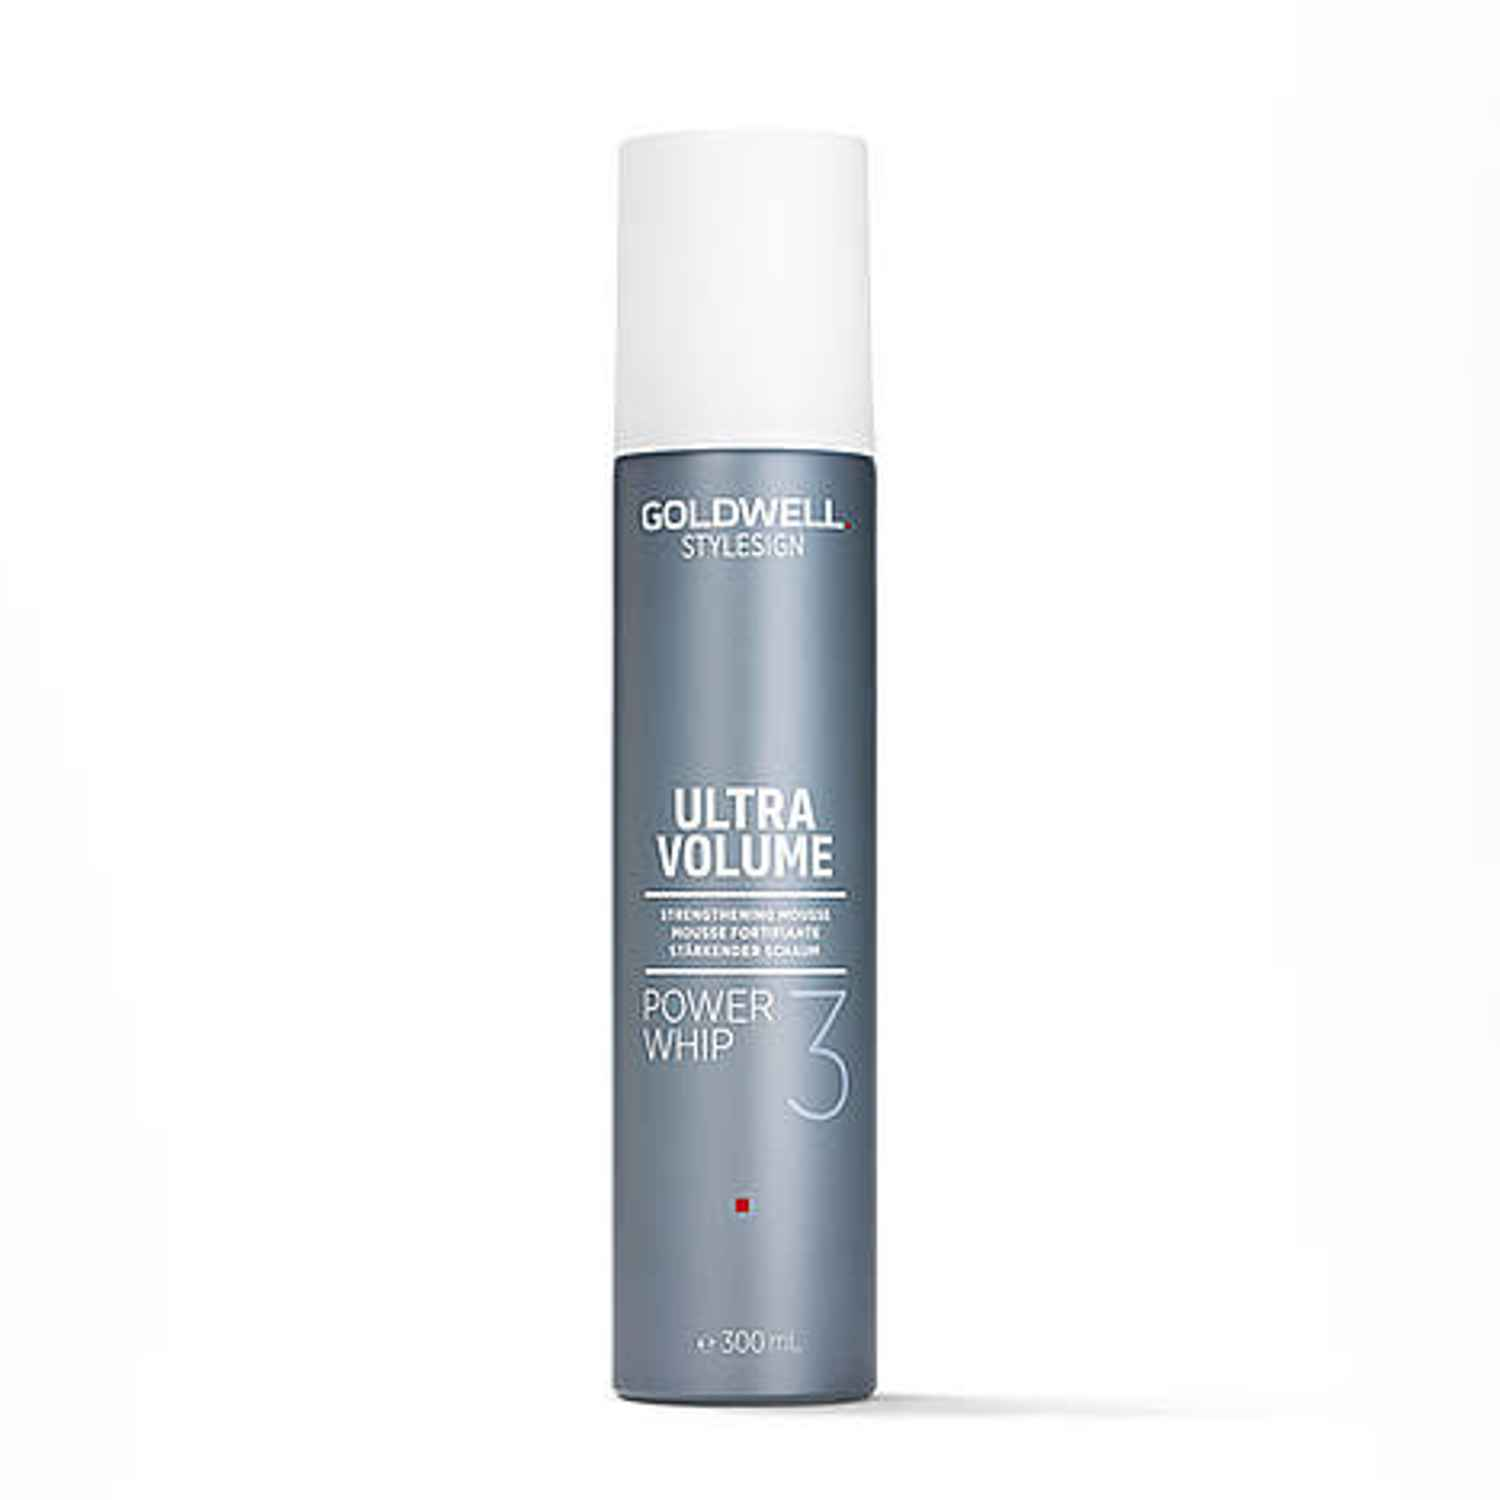 GOLDWELL Style Sign Ultra Volume POWER WHIP 300 ml